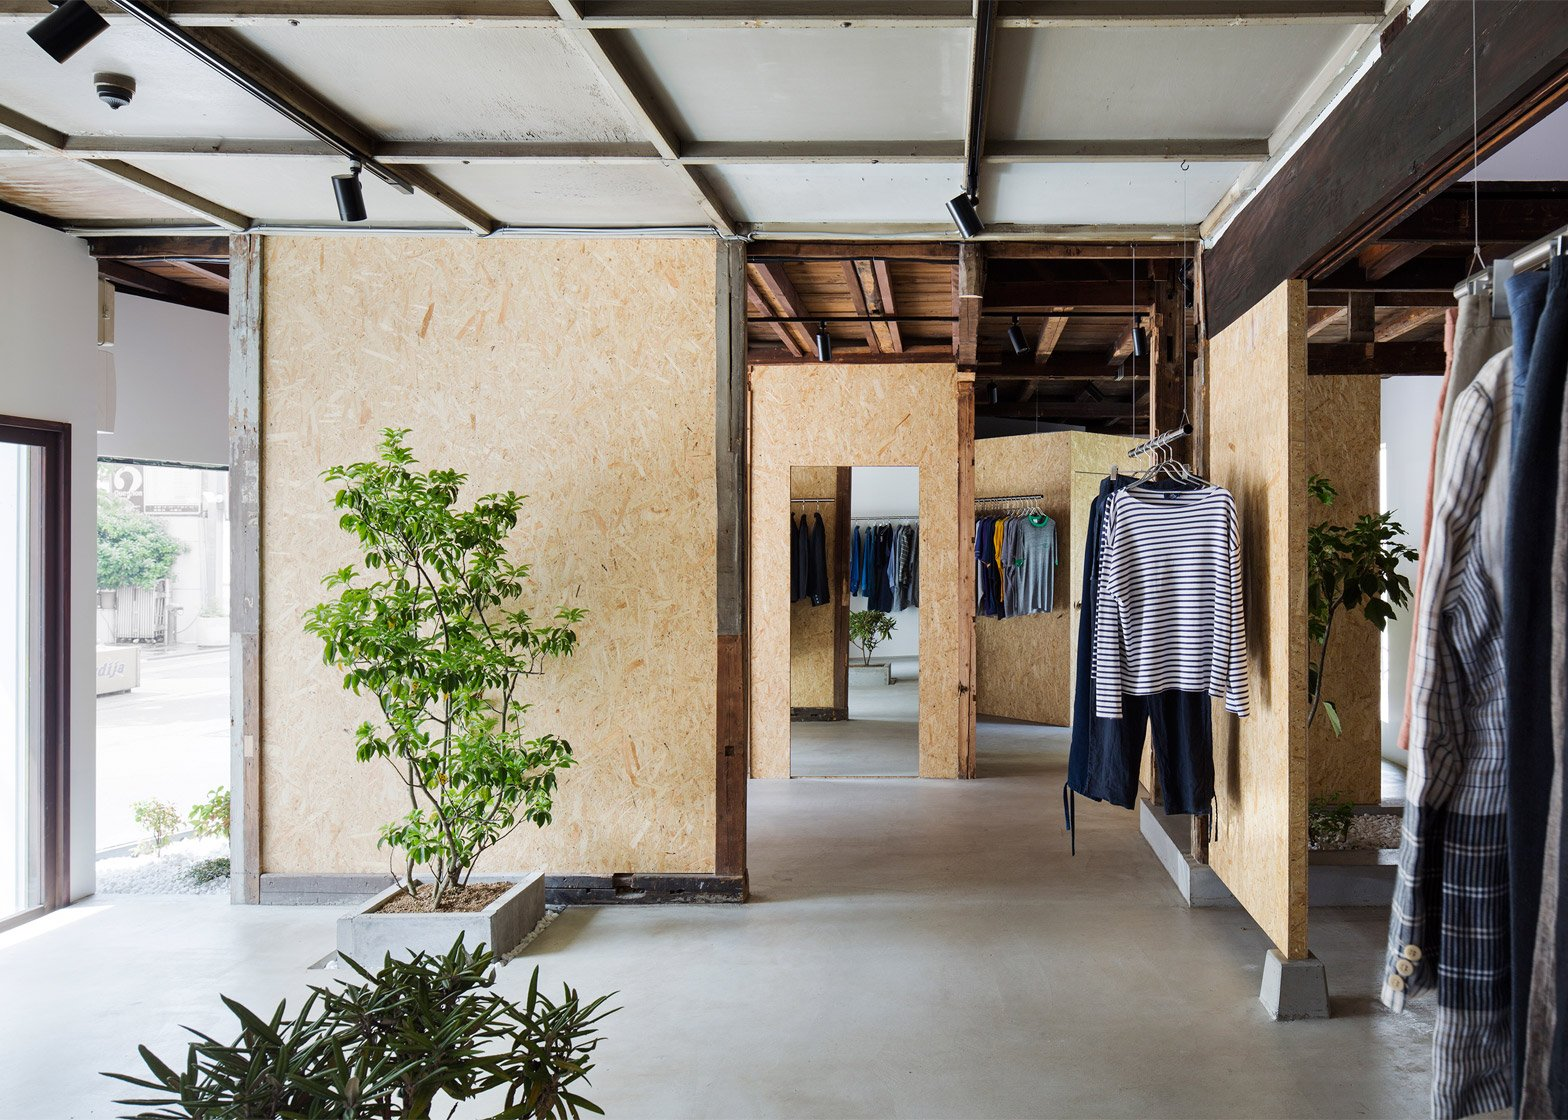 9 of 9; Bankara vintage clothing store by Manabu Okano & Manabu Okano transforms 1940s Japanese house into boutique